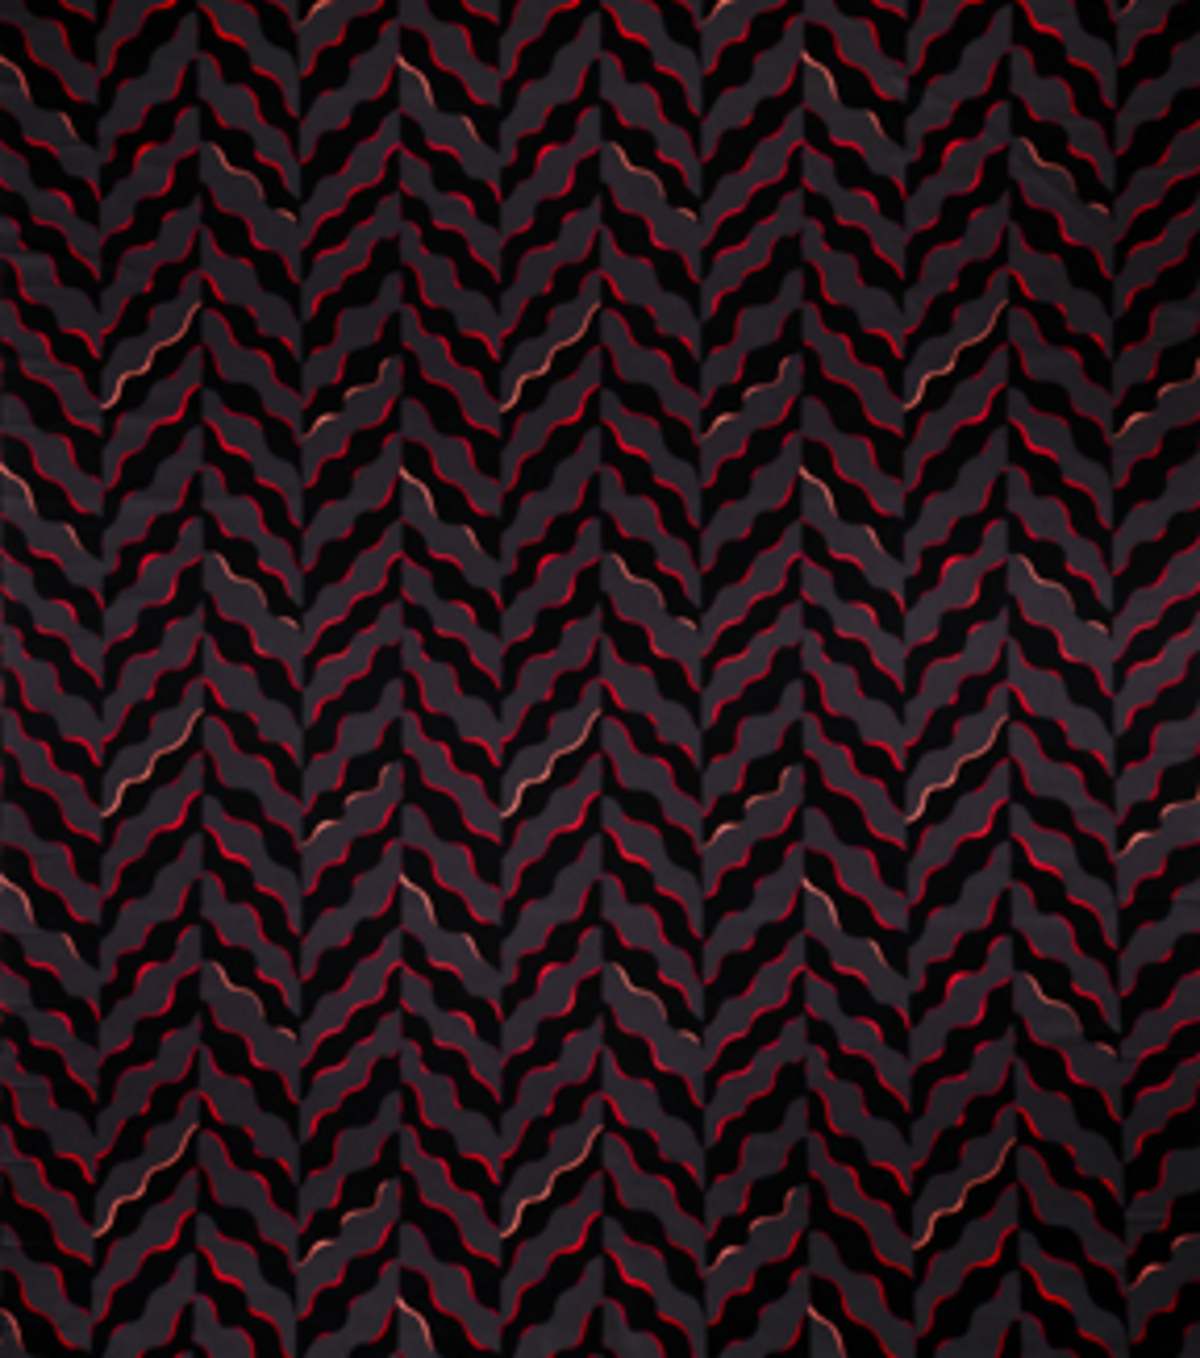 Home Decor 8\u0022x8\u0022 Fabric Swatch-Eaton Square Timbers Black And Bright